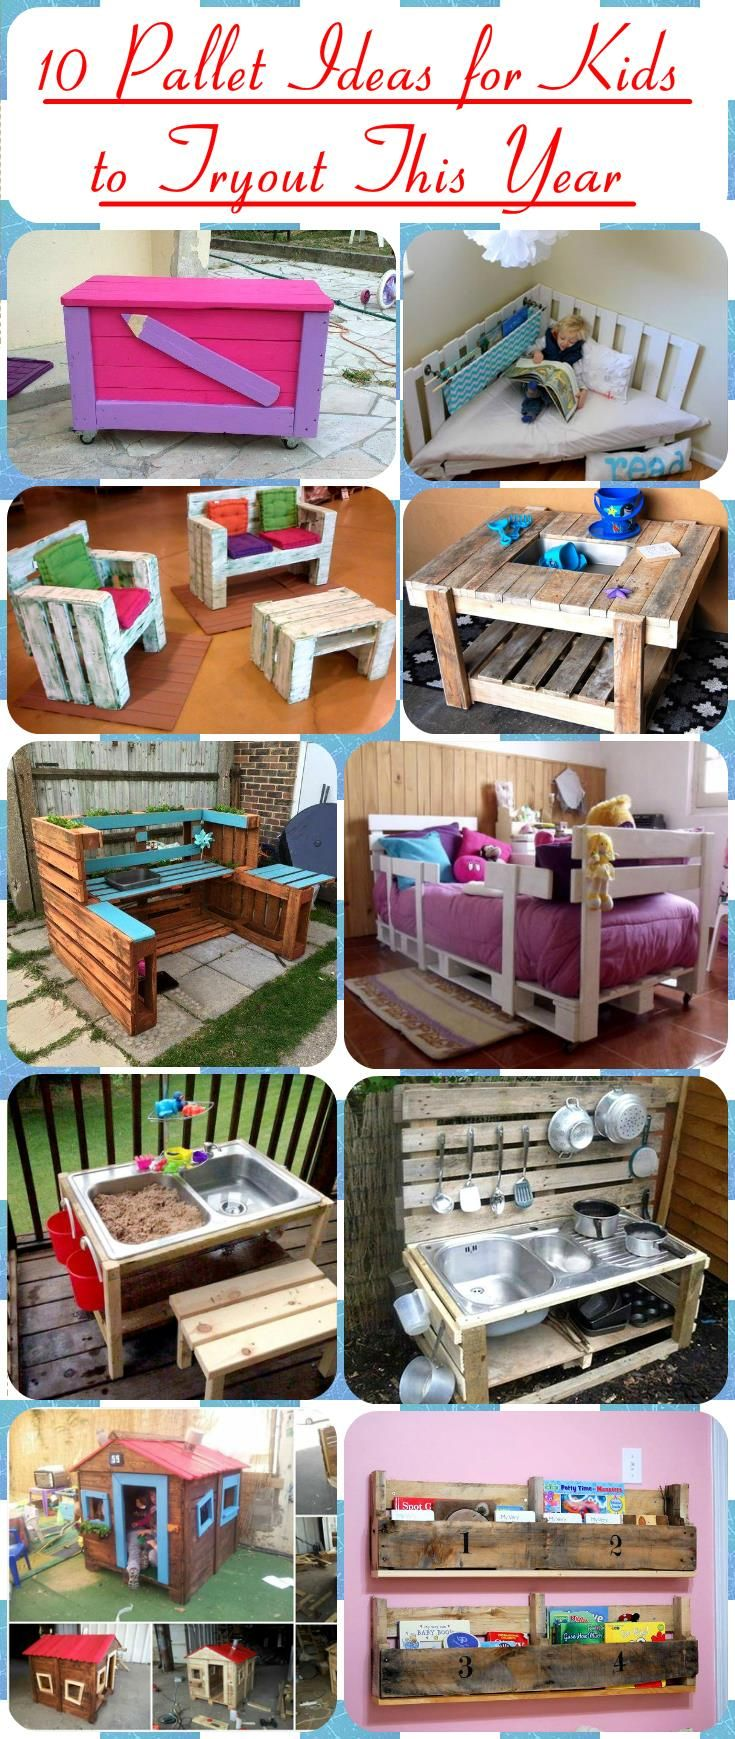 10 Pallet Ideas For Kids To Tryout This Year. Playhouse FurniturePallet  Furniture Diy OutdoorDiy ... Part 34